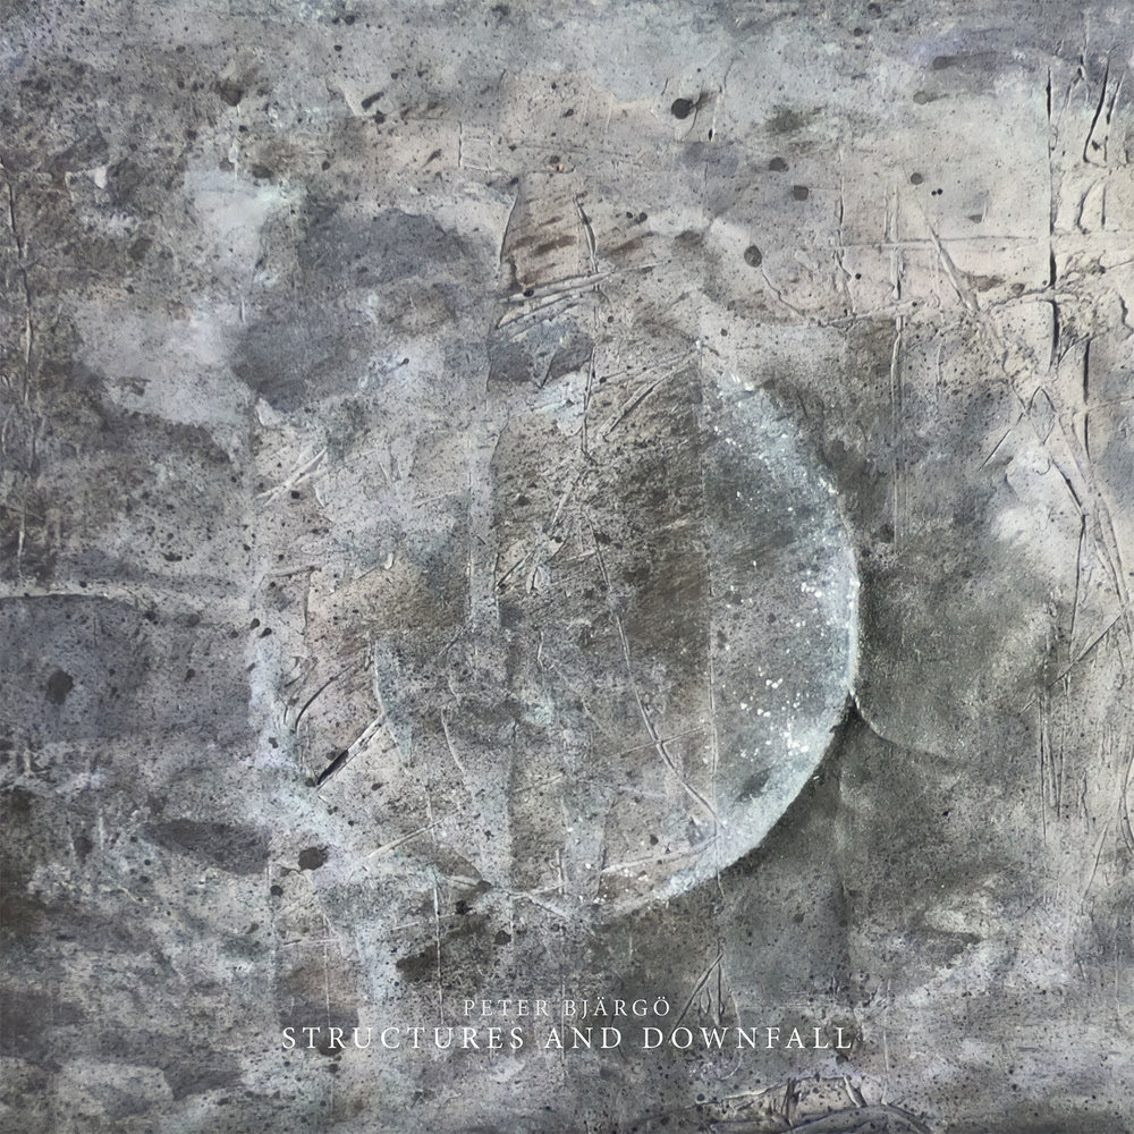 Peter Bjärgö to release new album 'Structures And Downfall' and re-issues of 'A Wave Of Bitterness' and 'The Architecture Of Melancholy' albums